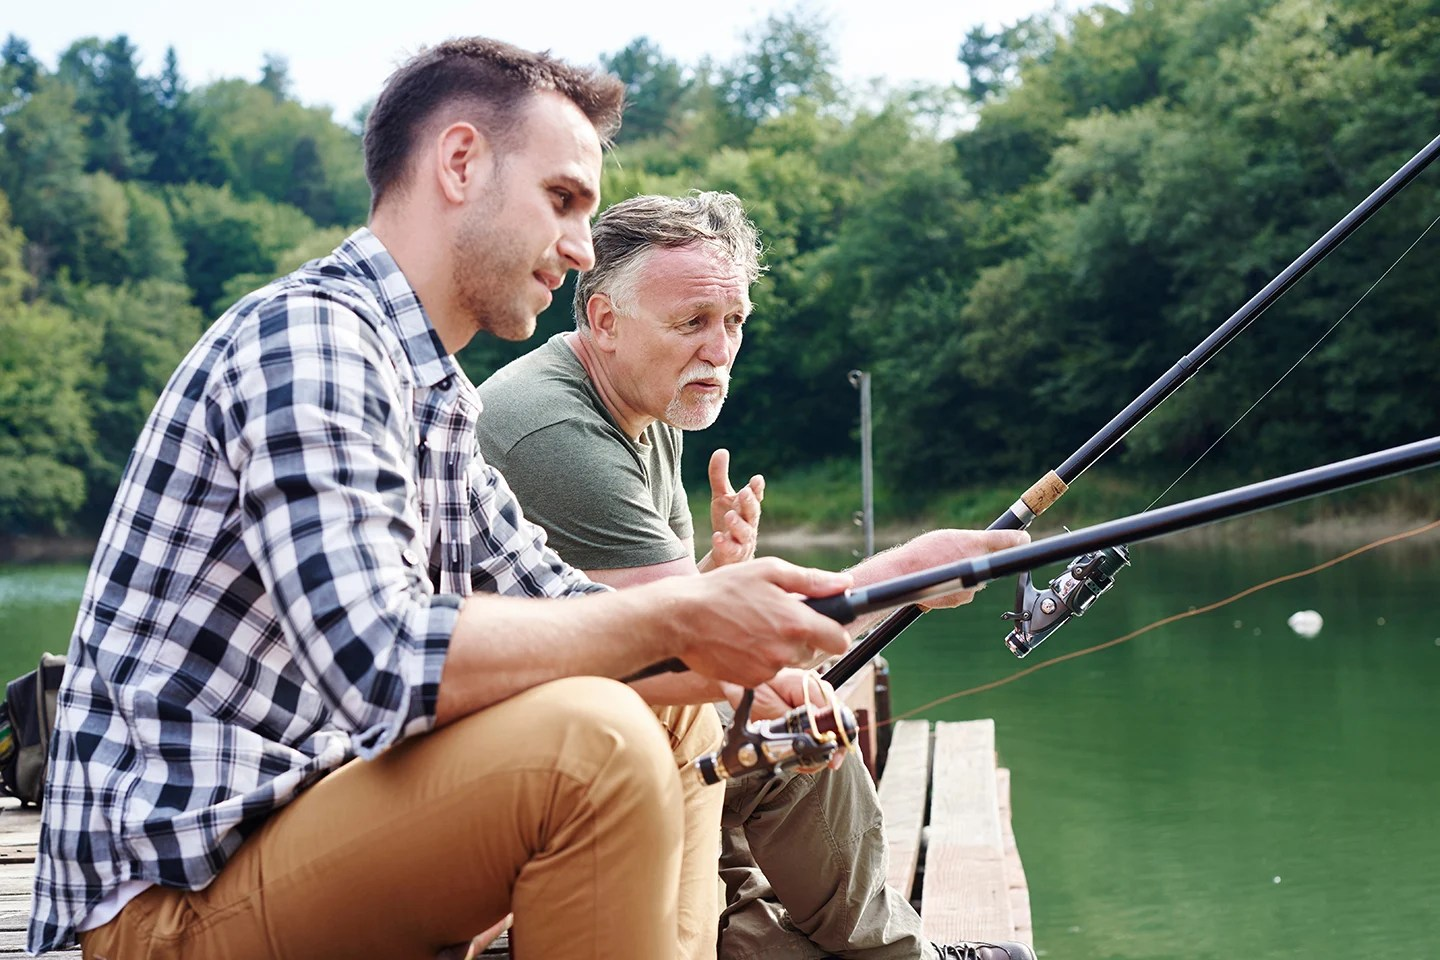 Two men talking to each other while fishing on a small jetty